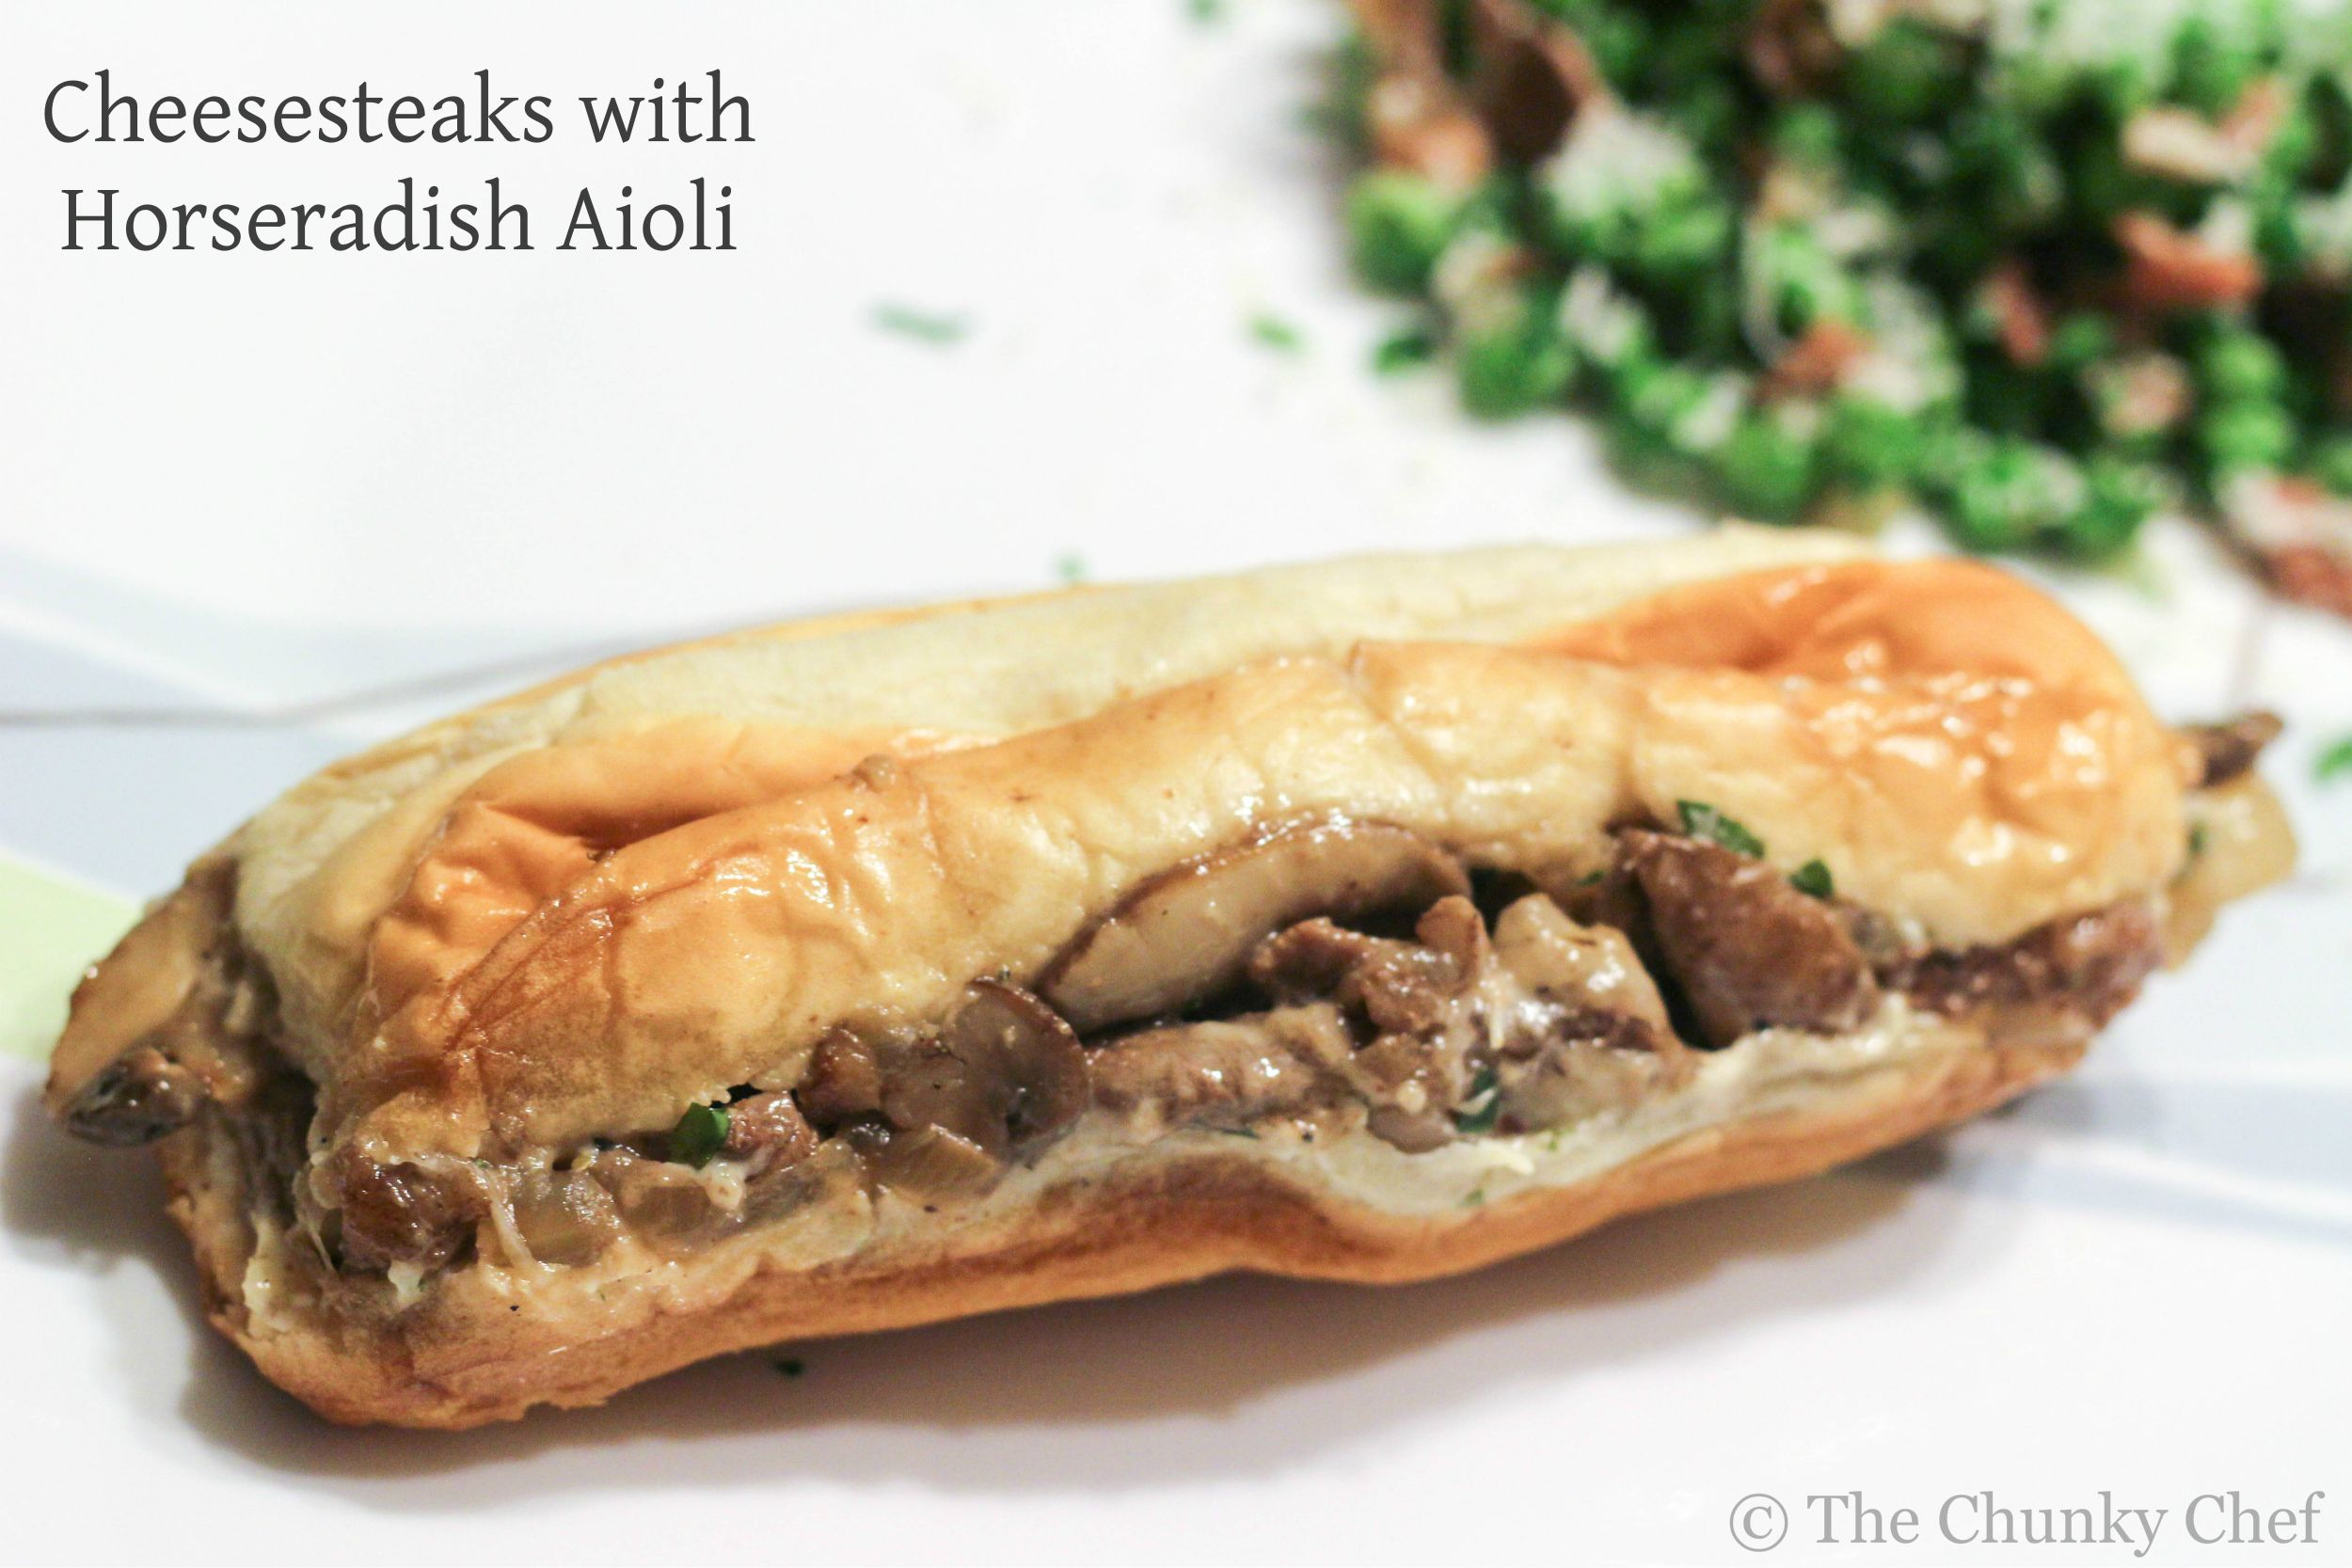 Cheesesteaks with a Horseradish Aioli - The Chunky Chef